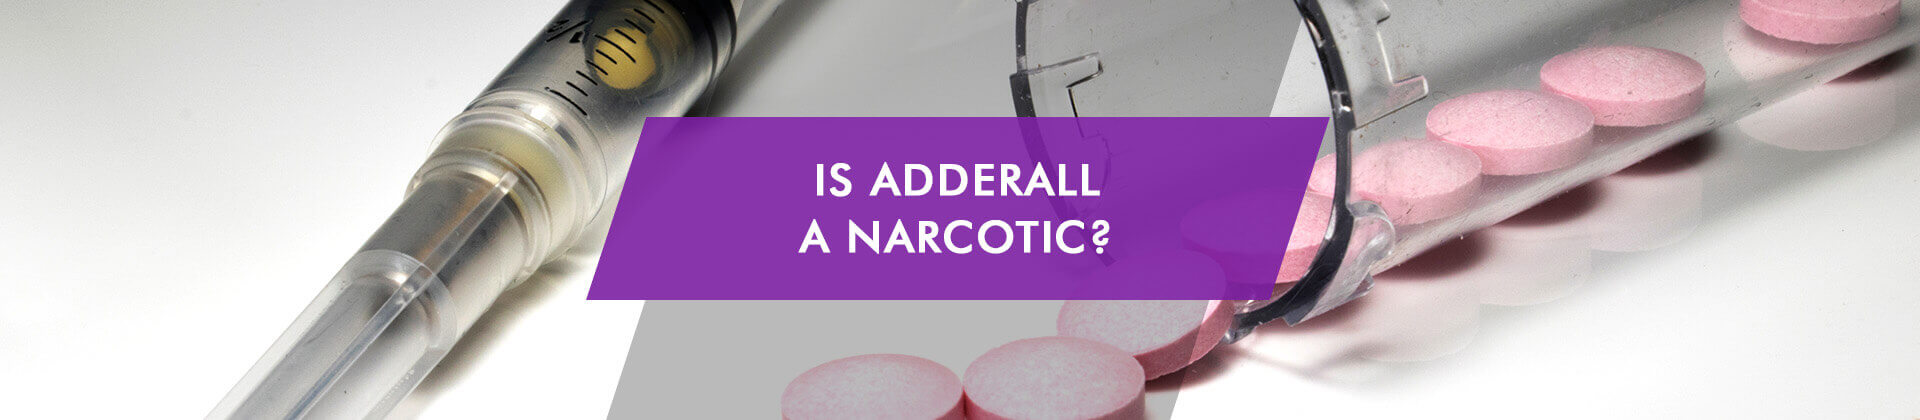 is Adderall a narcotic - drug classification